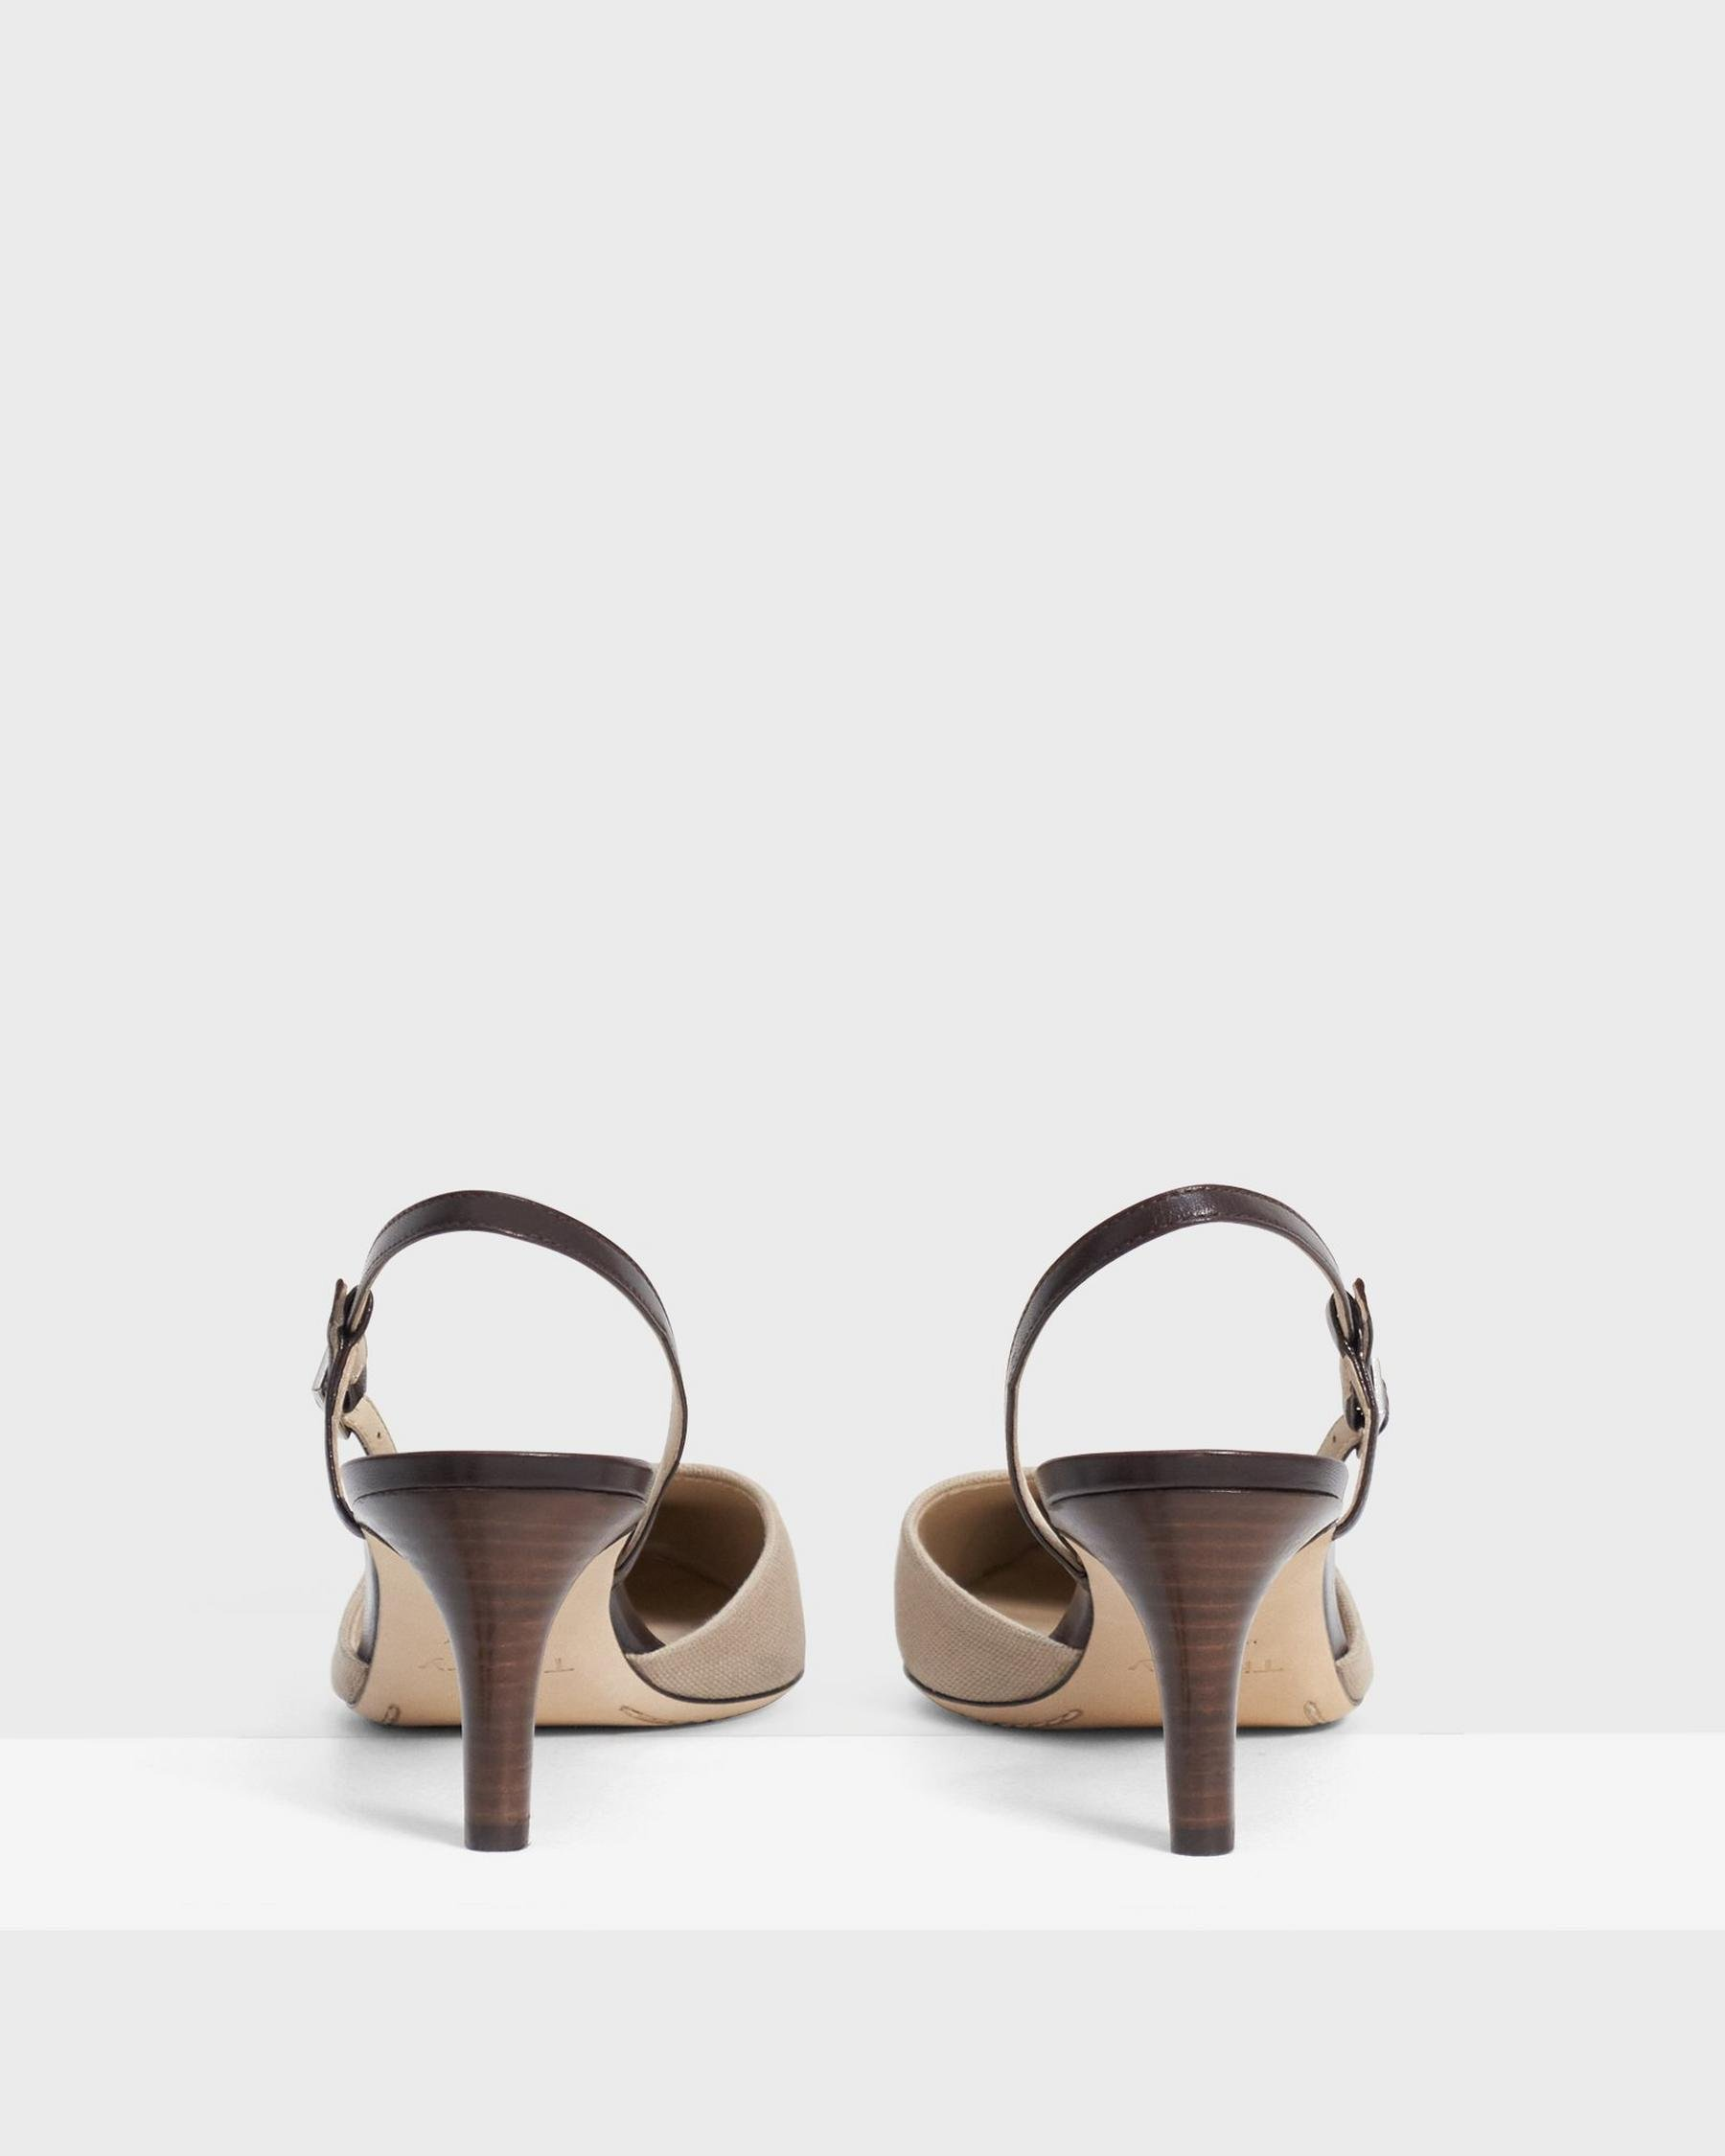 Buckled Mid-Heel Sandal in Cotton Canvas 3